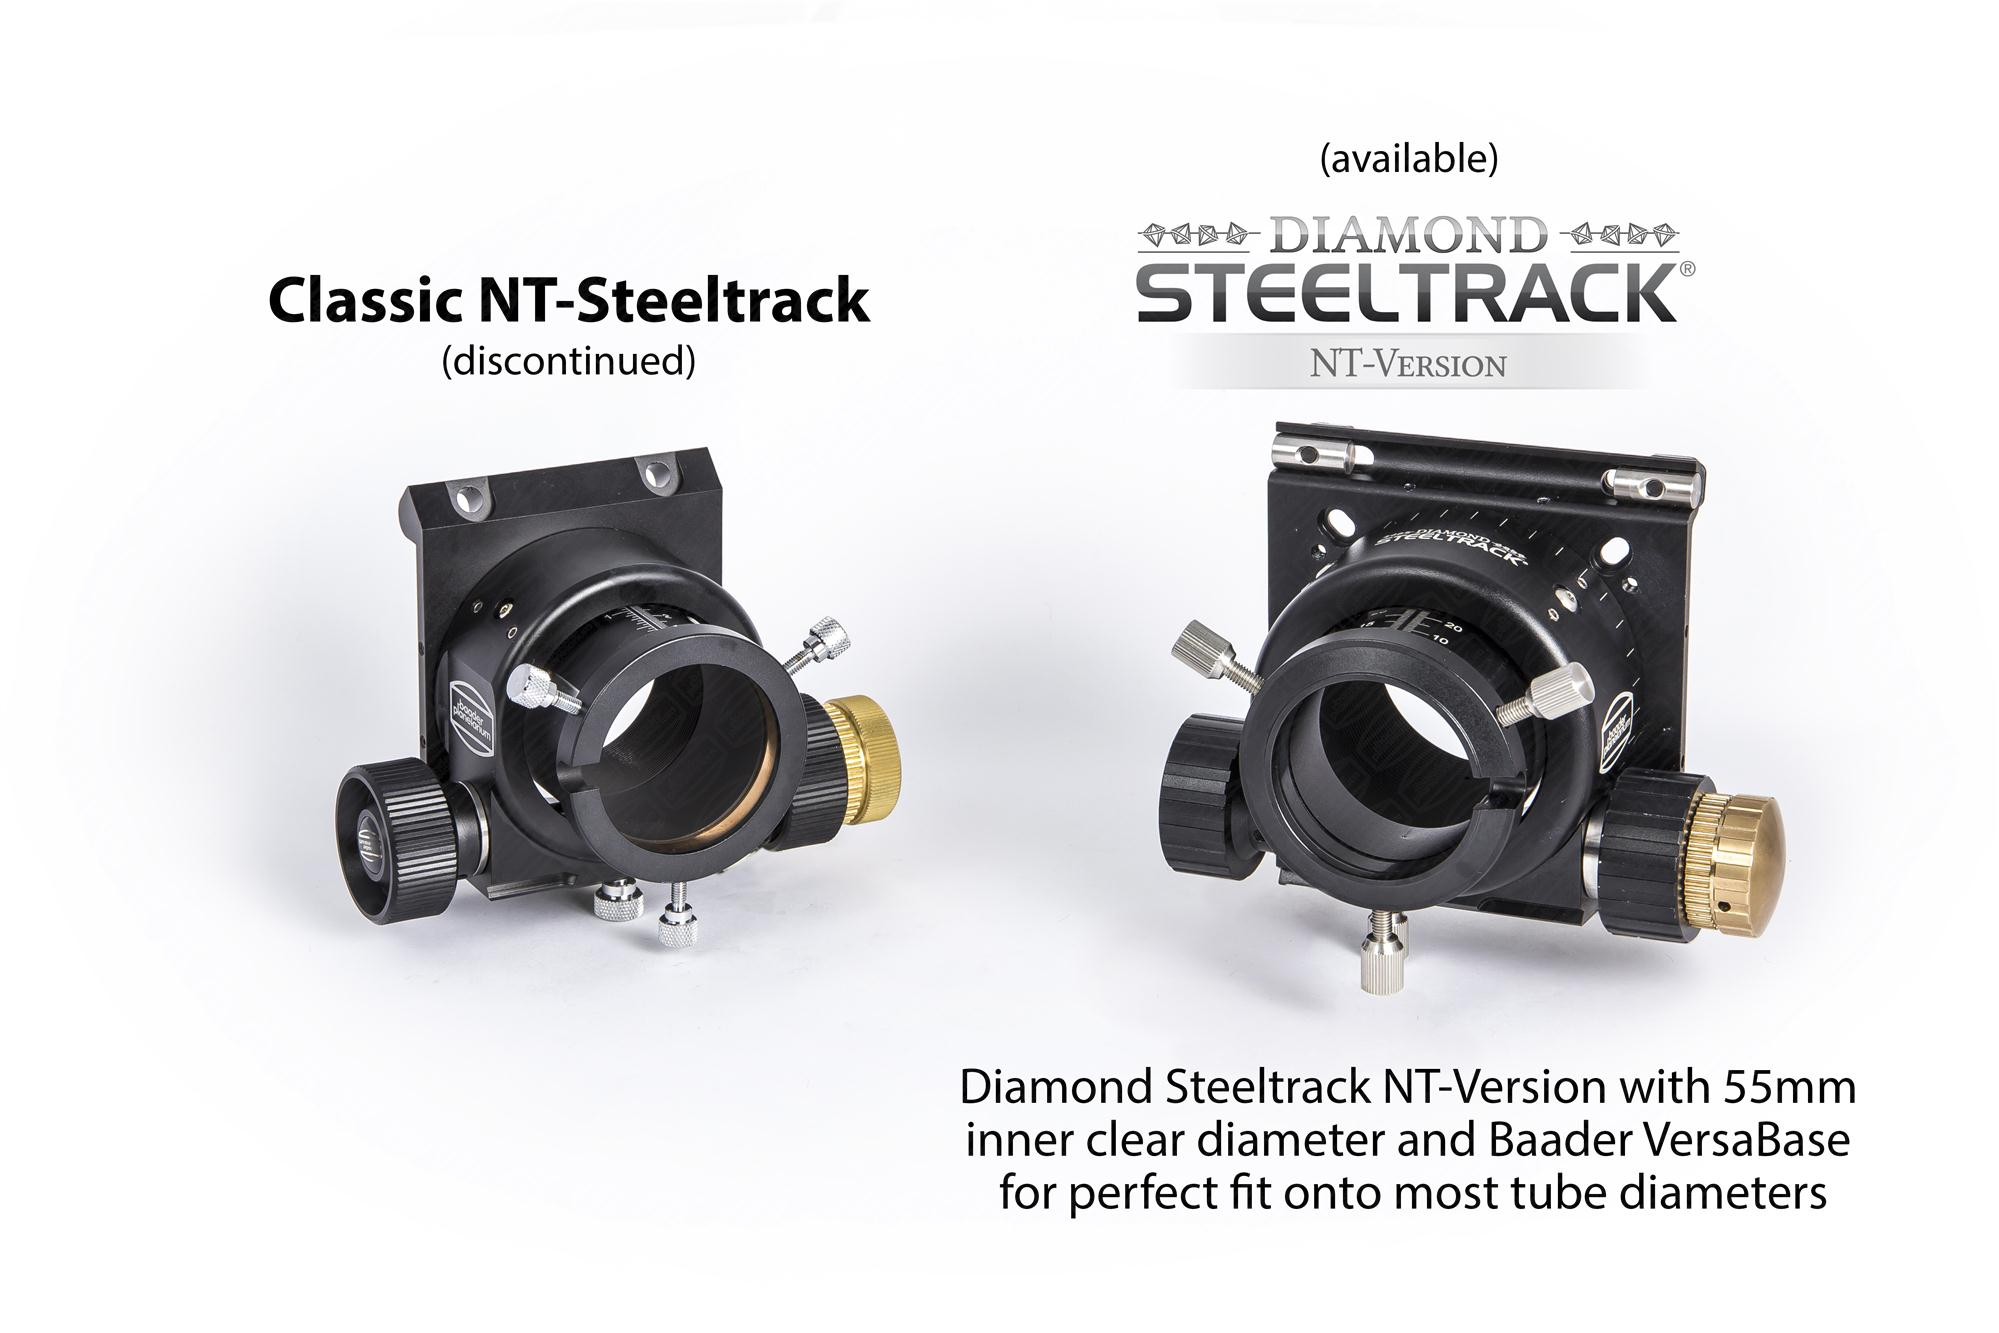 Comparison of Classic and Diamond Steeltrack